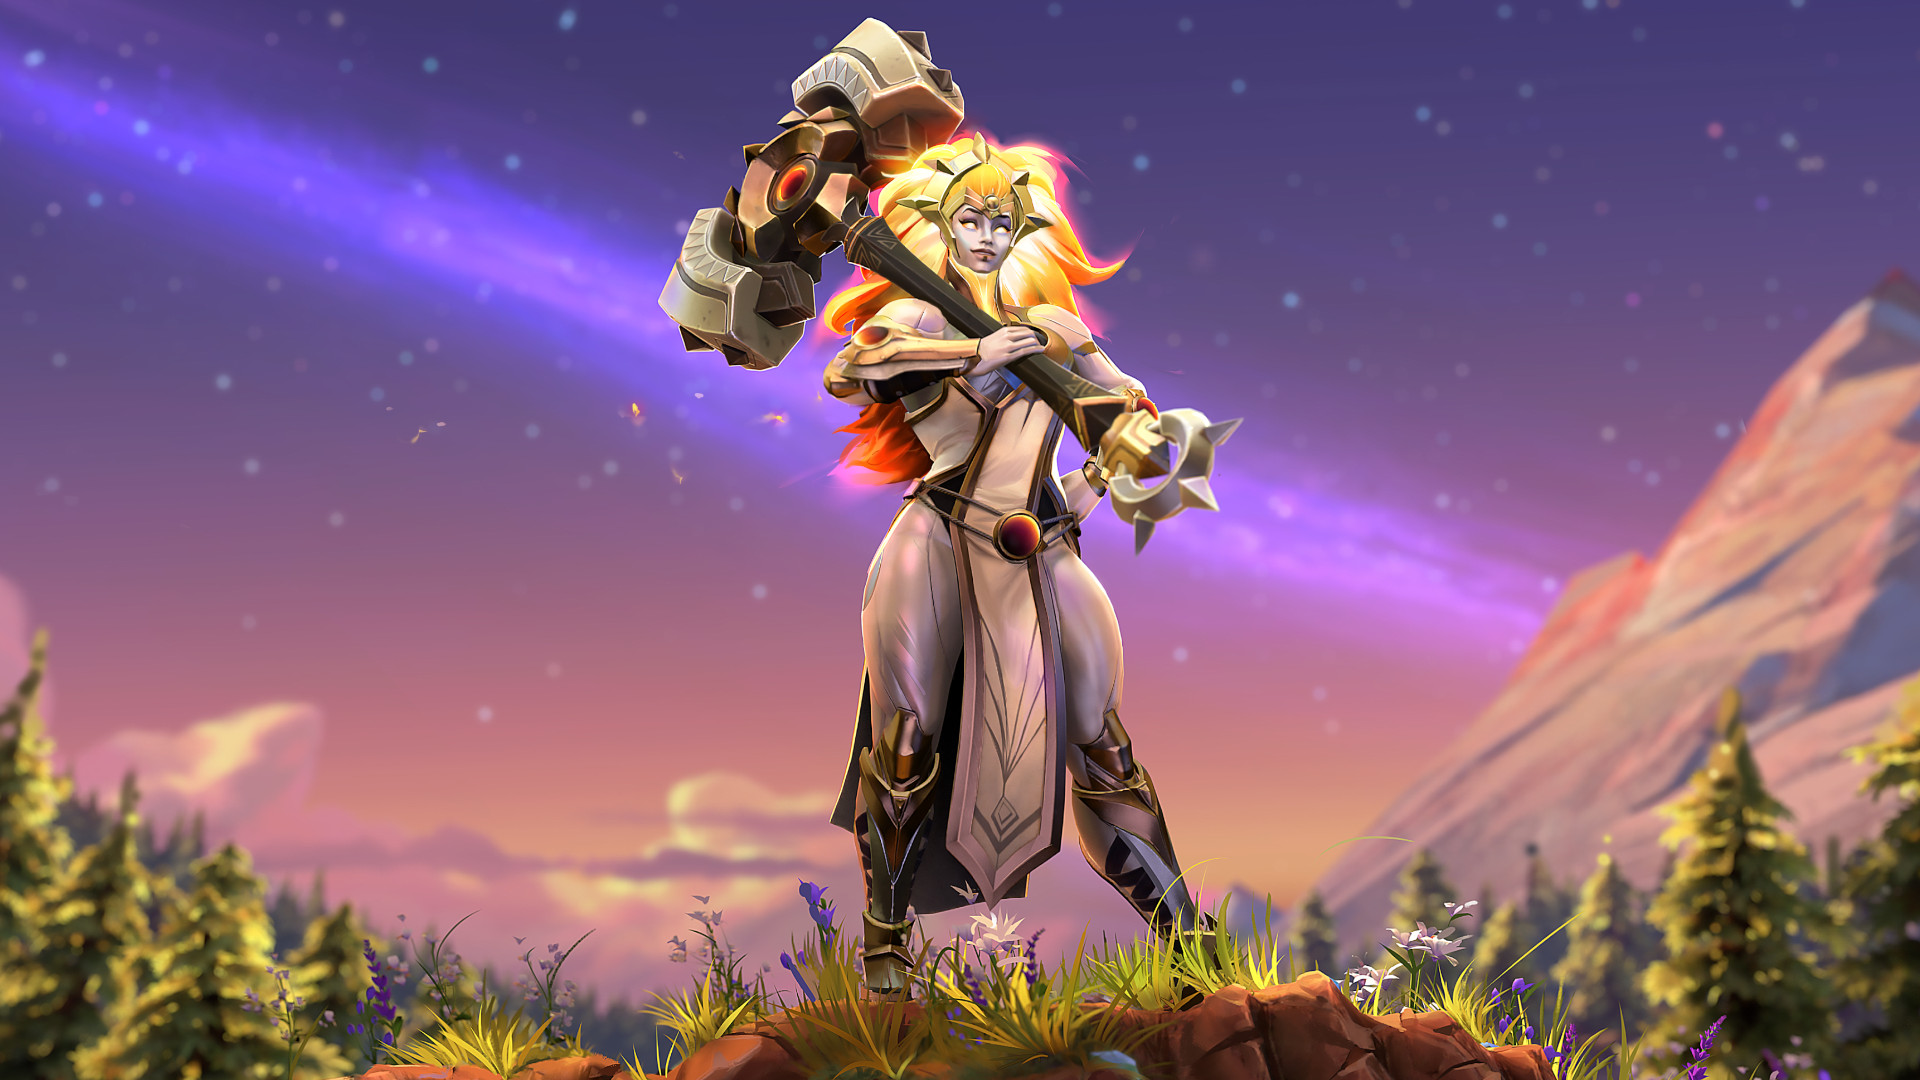 Dota 2 patch brings bottle refill changes and some unannounced updates